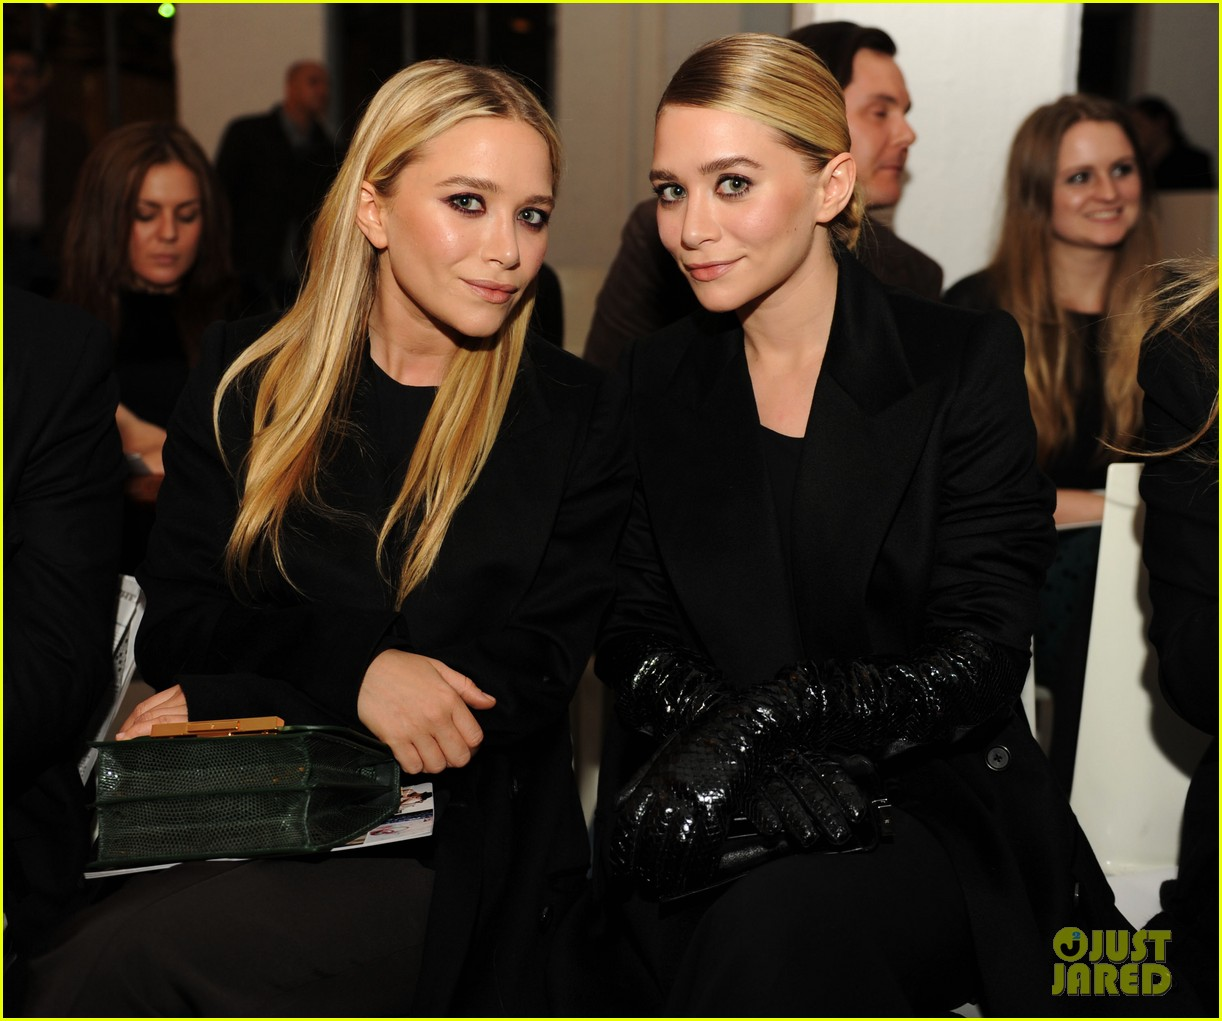 http://3.bp.blogspot.com/-vGKnAi4OEek/UPlIxYDXK2I/AAAAAAAAAbQ/WxsrLriFgkI/s1600/mary-kate-ashley-olsen-qvc-show-fashion-week-03.jpeg